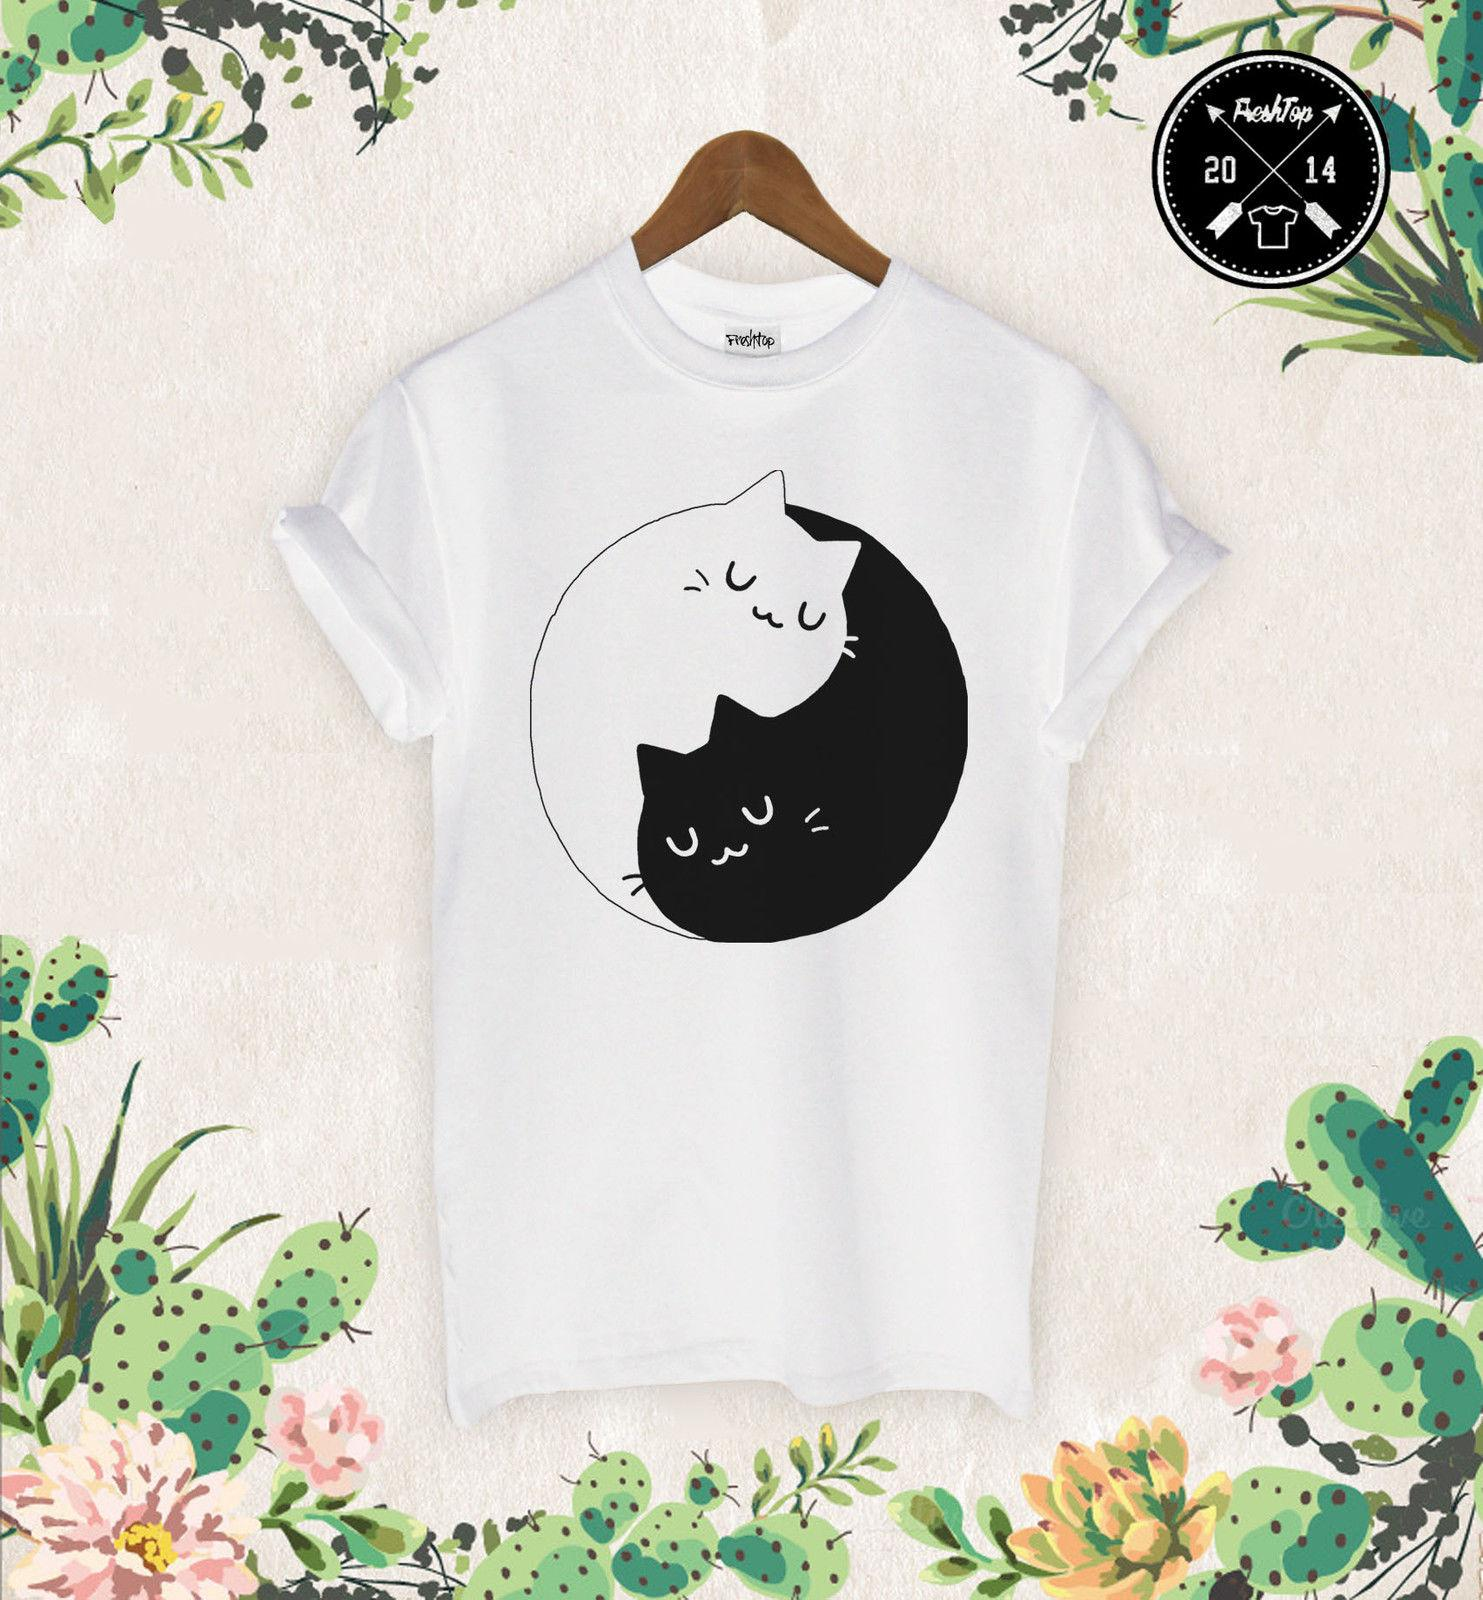 62ffaafbc Kitten Kittens T Shirt Meow I Love Cats Crazy Cat Lady Sweet Yin Yang  Unicorn T Shirt On Buy Cool Shirts From Clothing_deals, $12.96| DHgate.Com